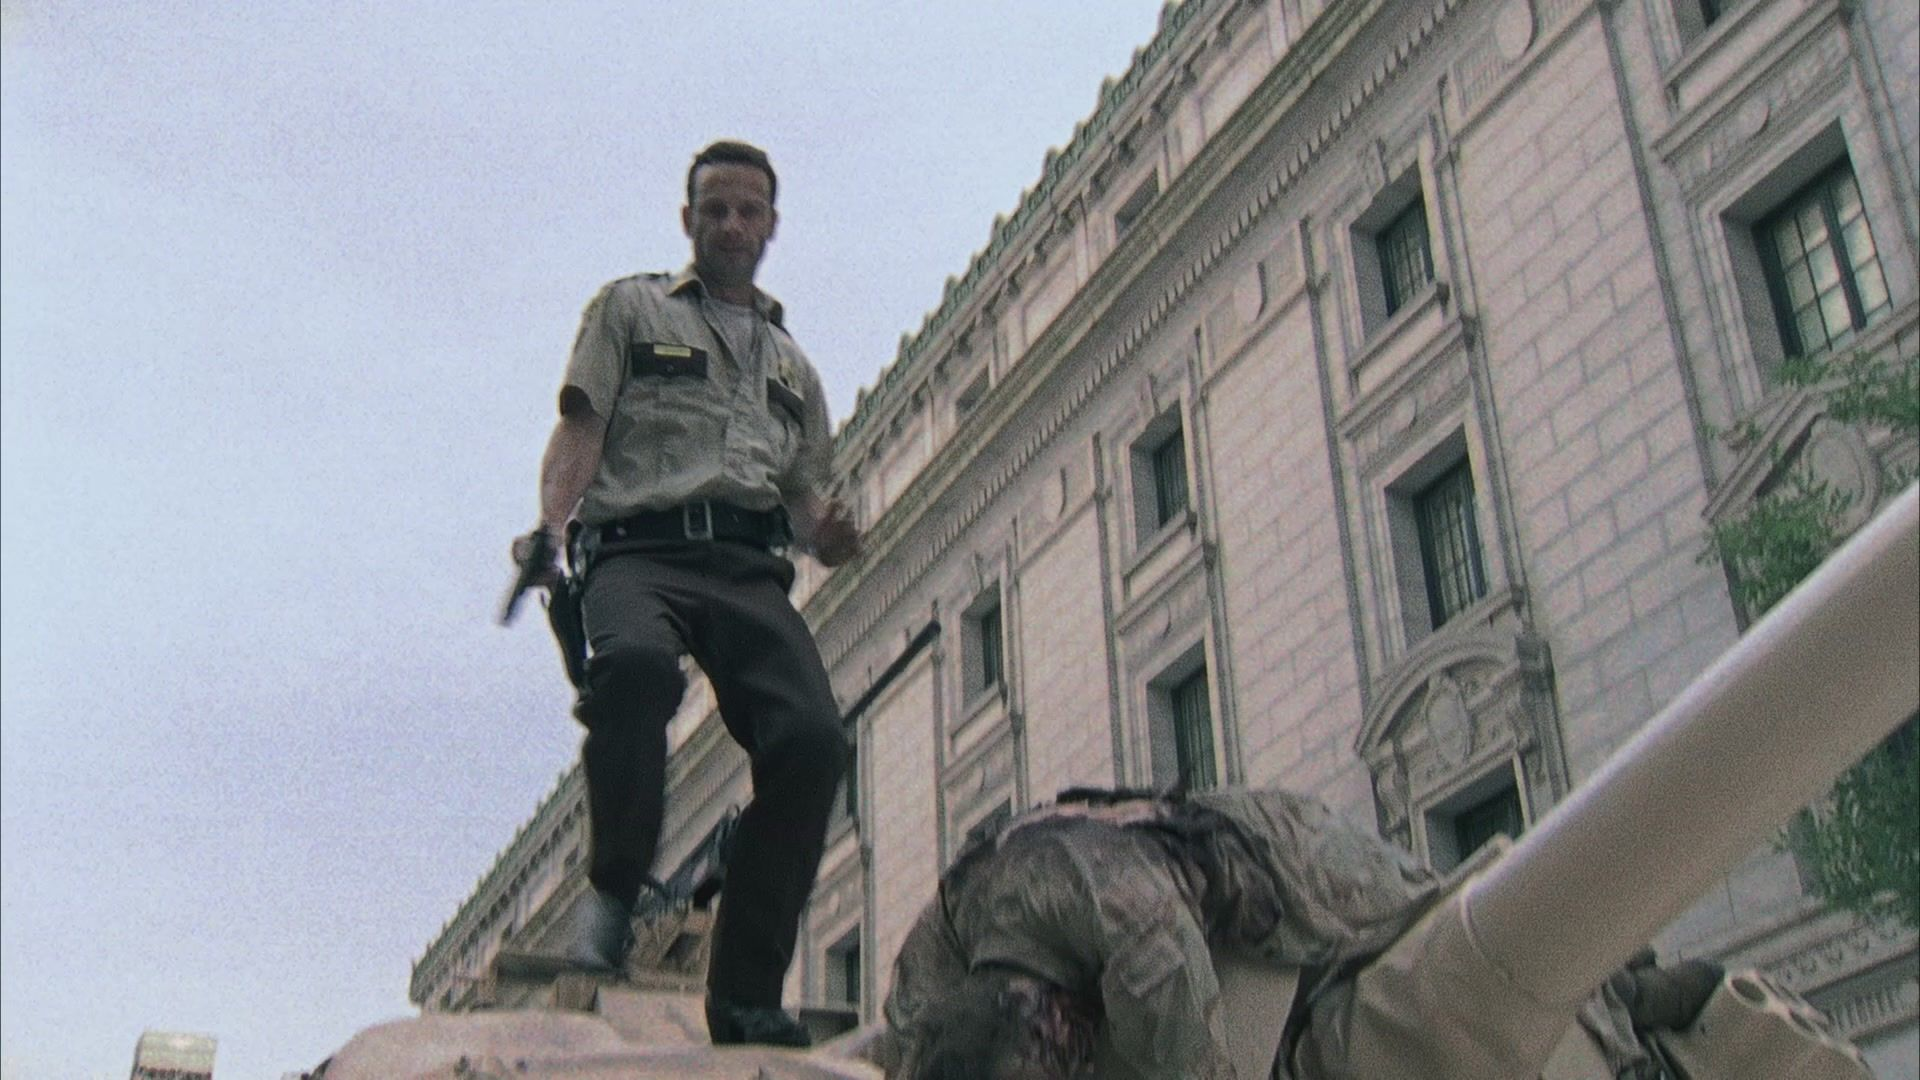 Rick causes walkers to trap a group of survivors.  As Rick must face an enemy a lot more dangerous, the group dynamic devolves from accusations to violence.